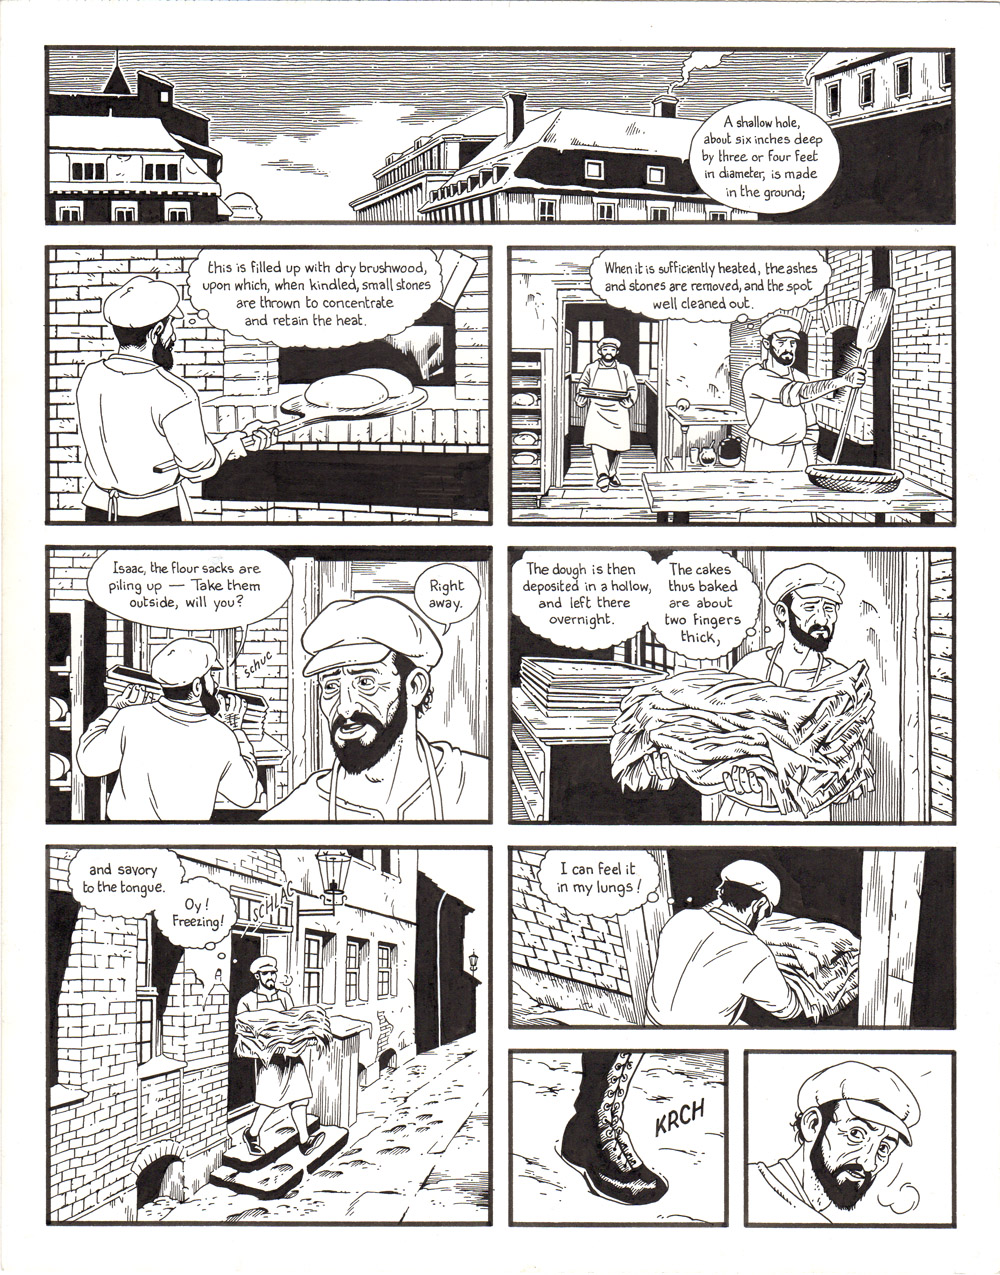 Berlin: Book 1 - Page 140